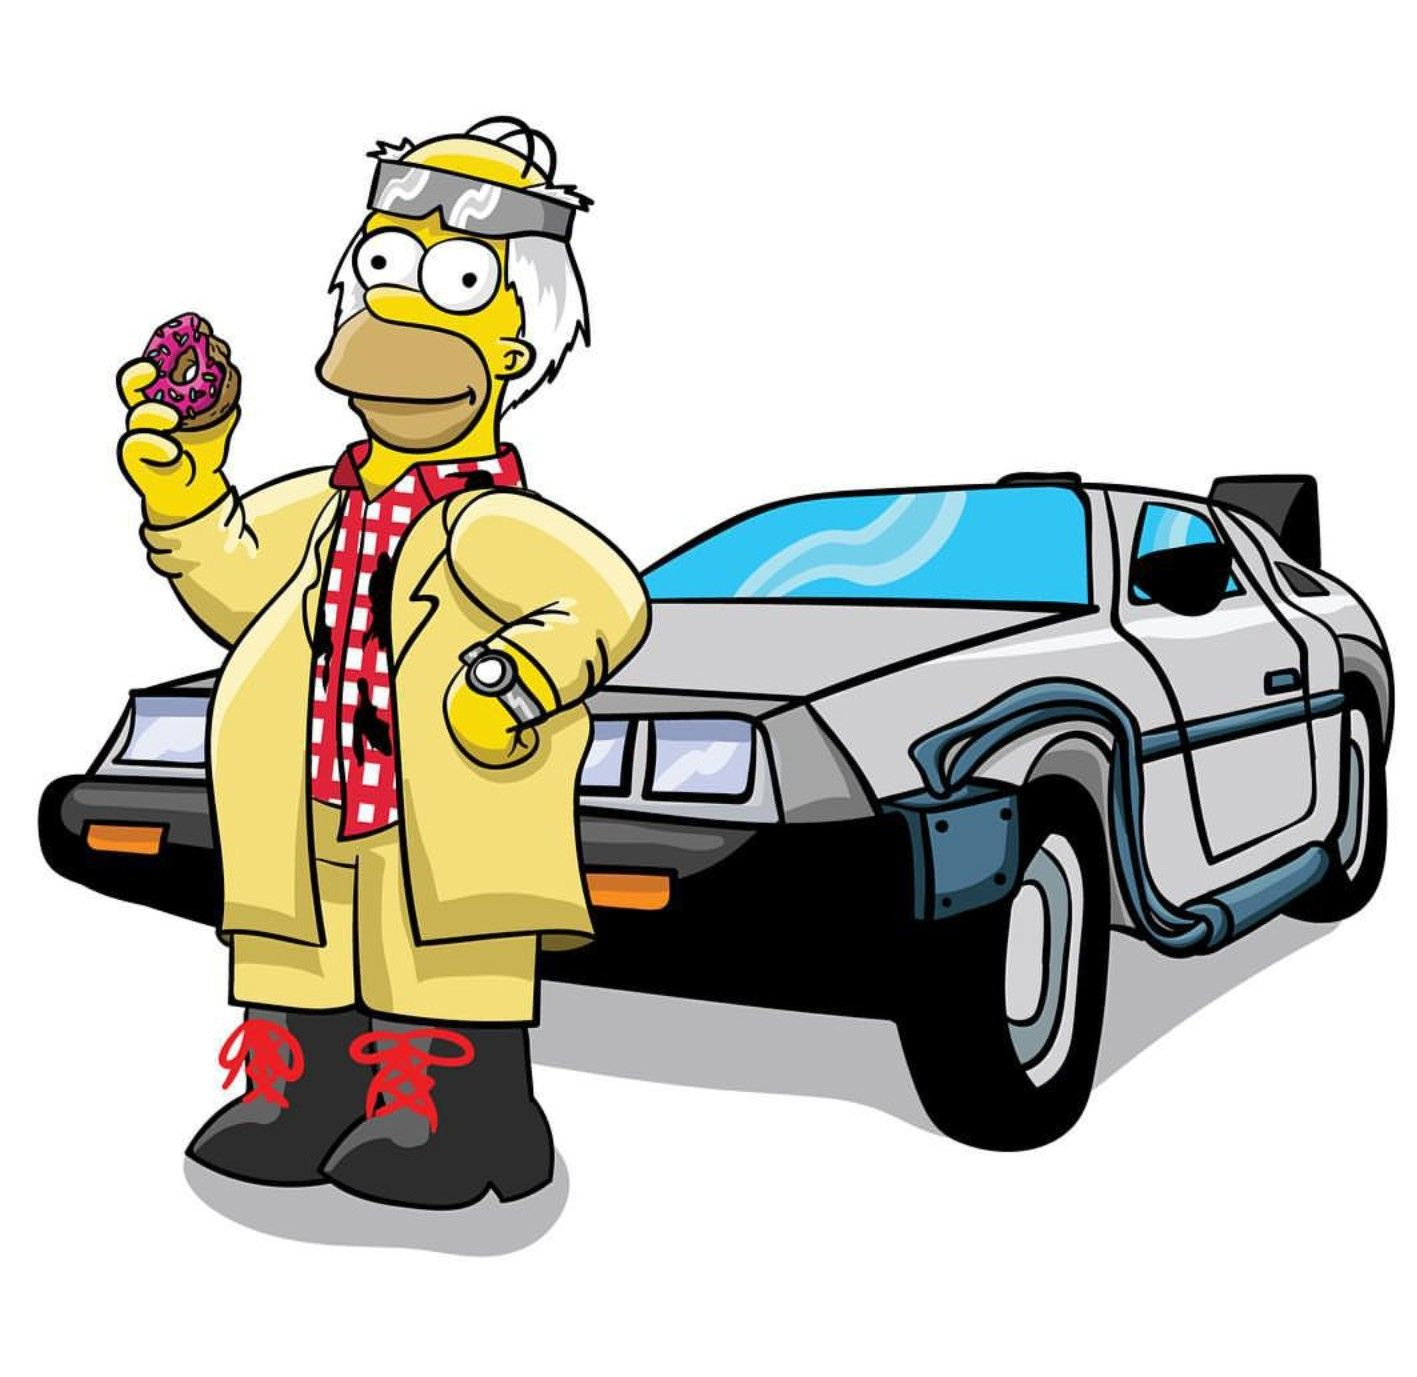 1417x1377 Homer X Back To The Future, The Simpsons Crossovers Amp Mashups